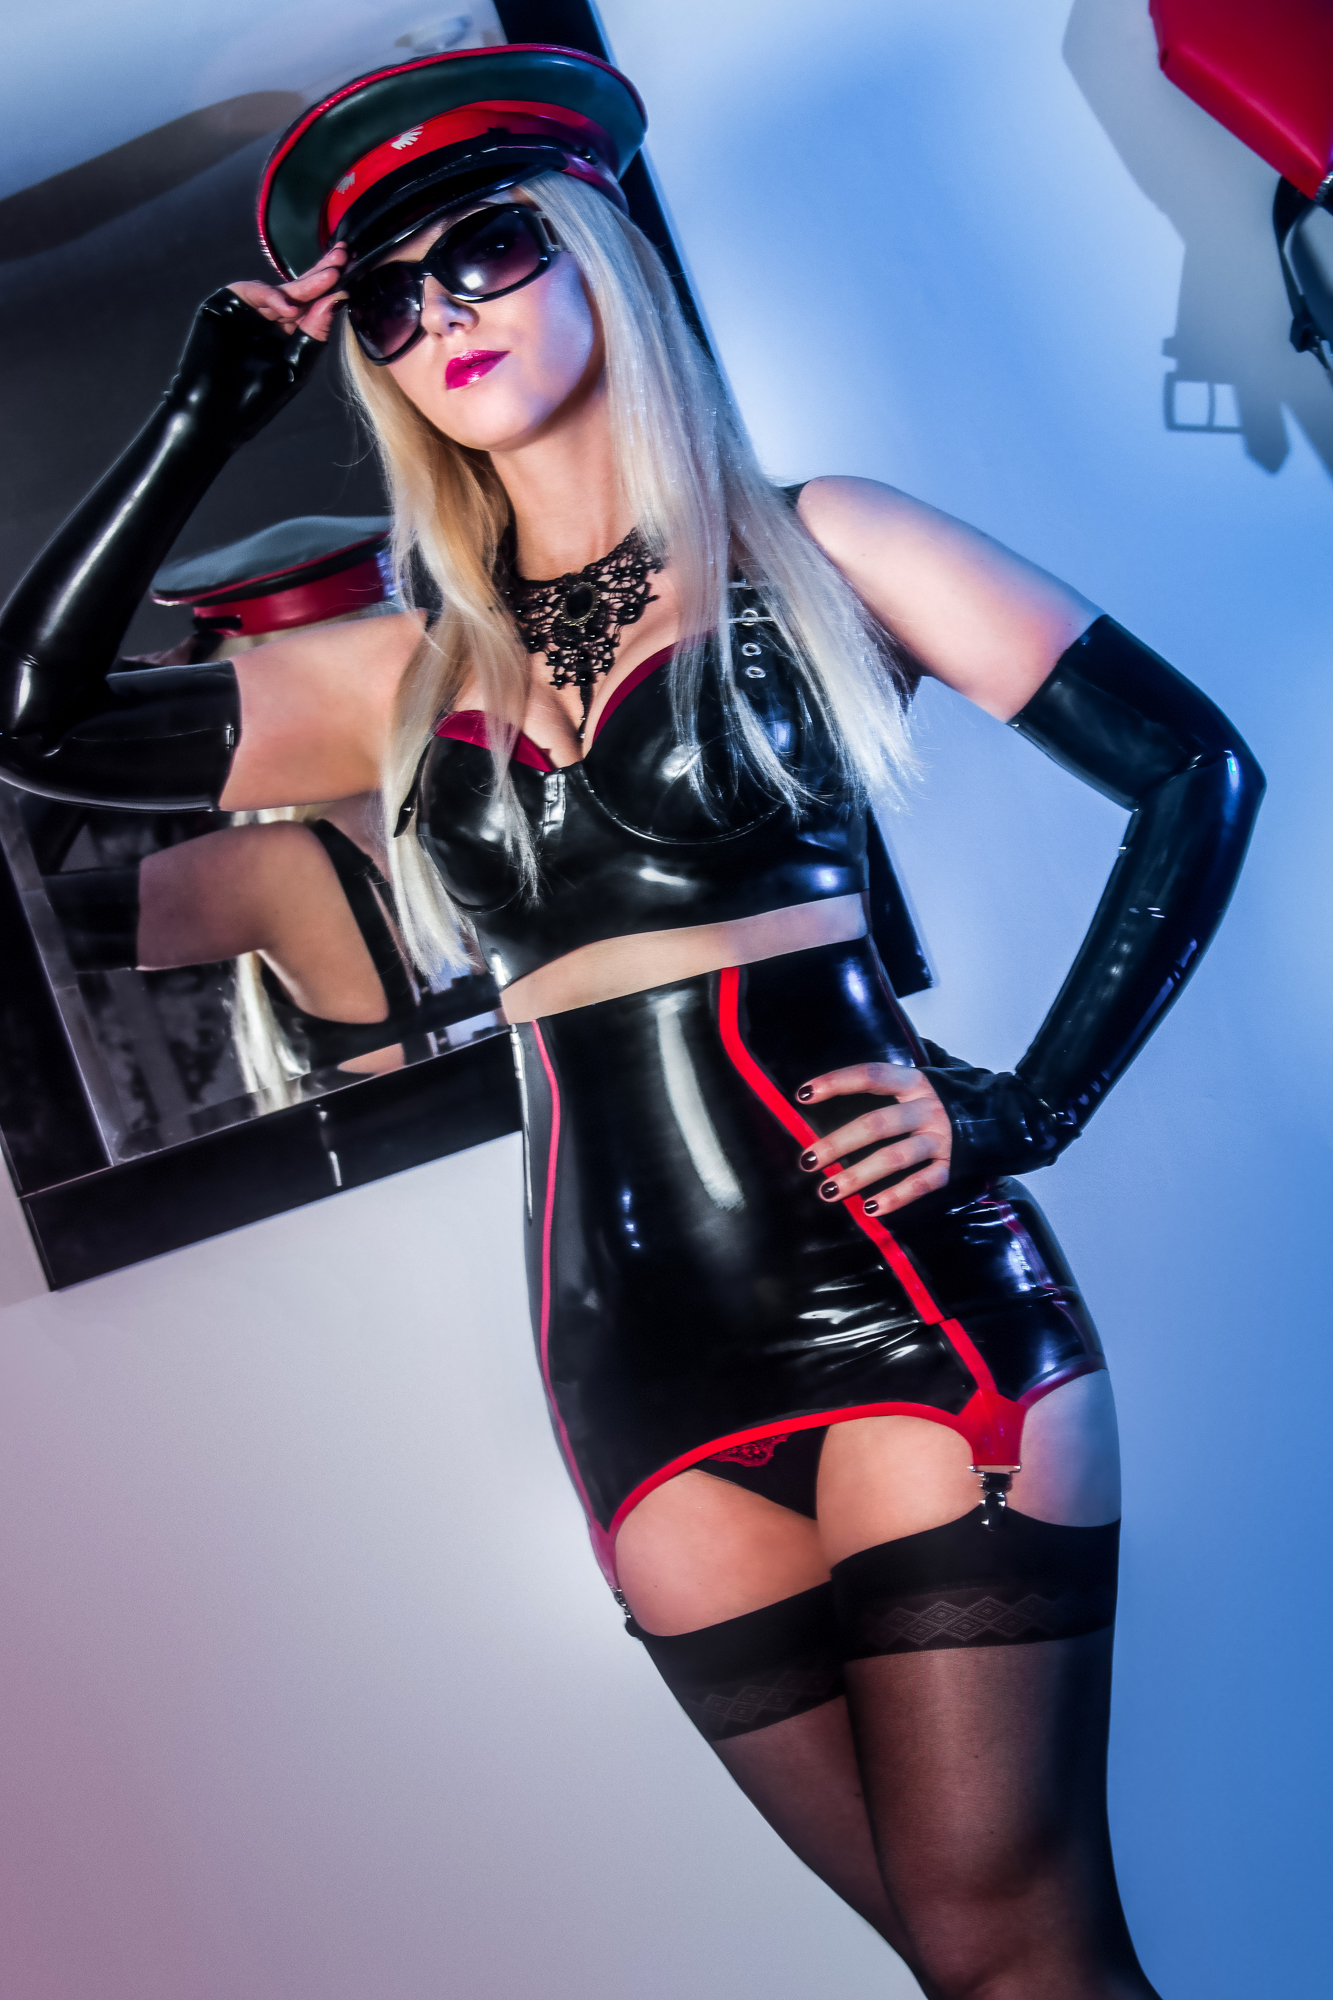 London Mistress Wildfire wearing beautiful latex outfit